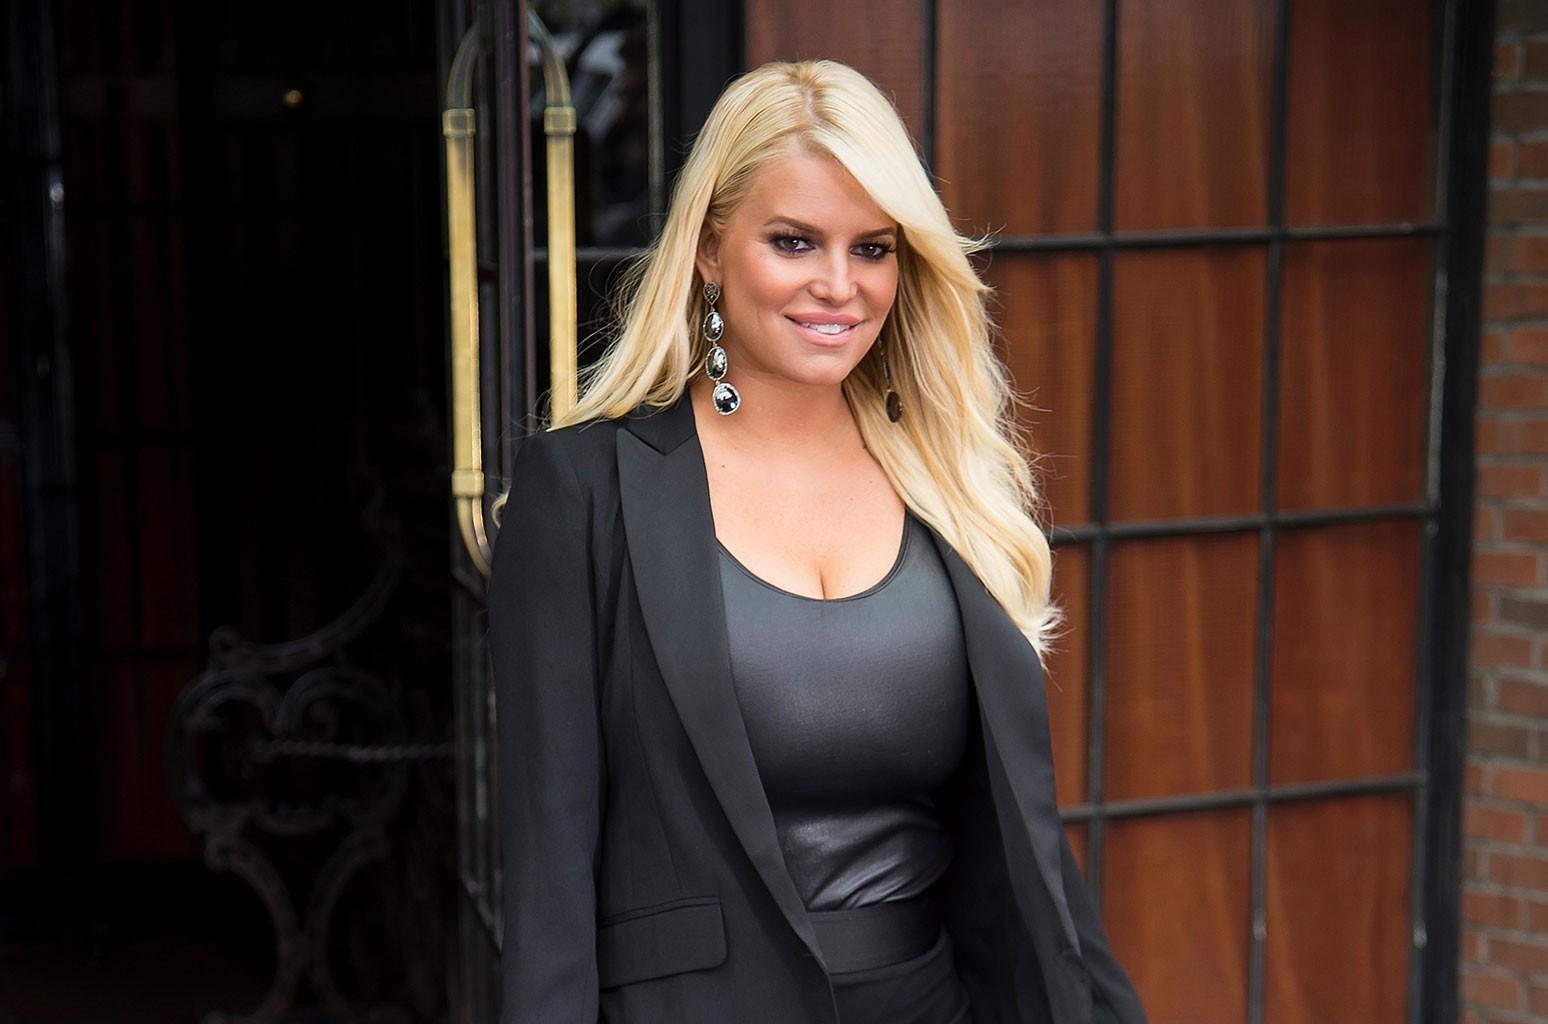 Jessica Simpson Reveals She Doesn't Even Own A Scale Anymore After Years Of Body-Shaming